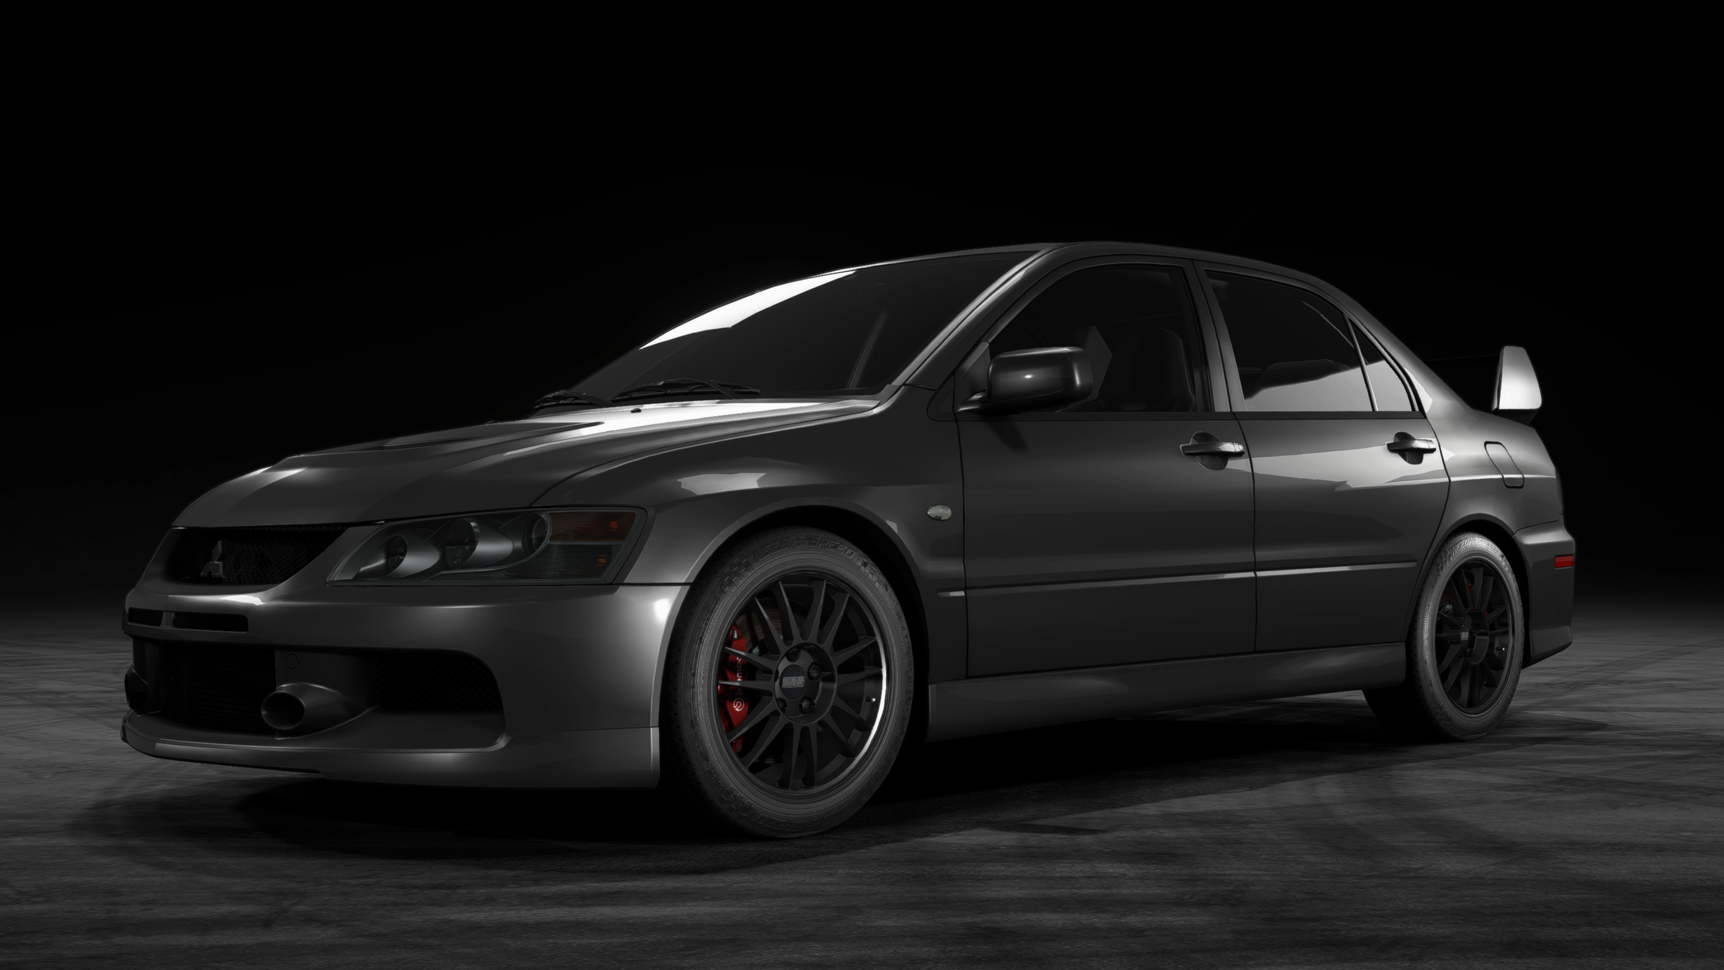 Mitsubishi Lancer Evolution IX MR-edition